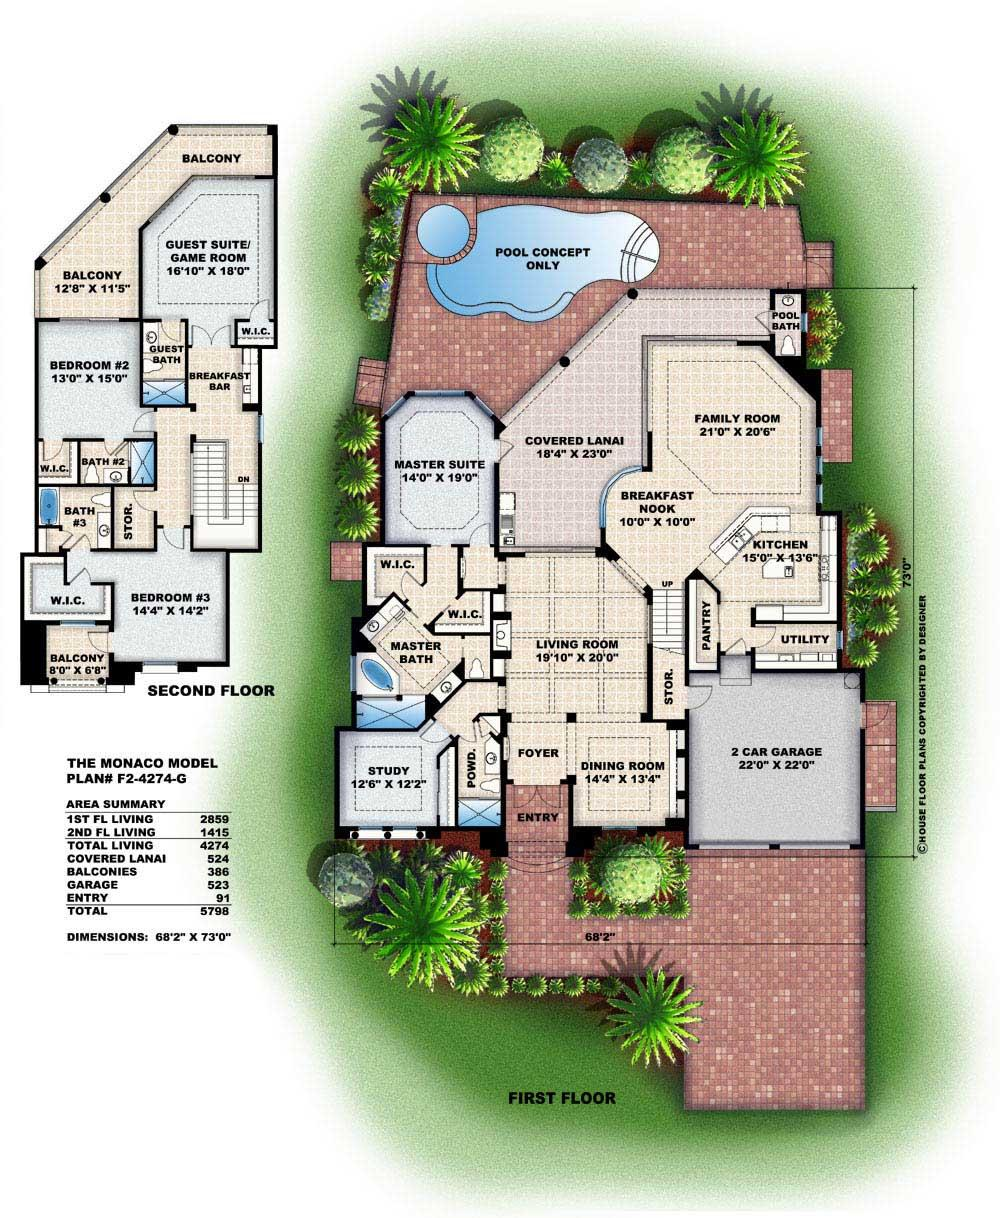 Floor Plans for this Mediterranean set of house plans.